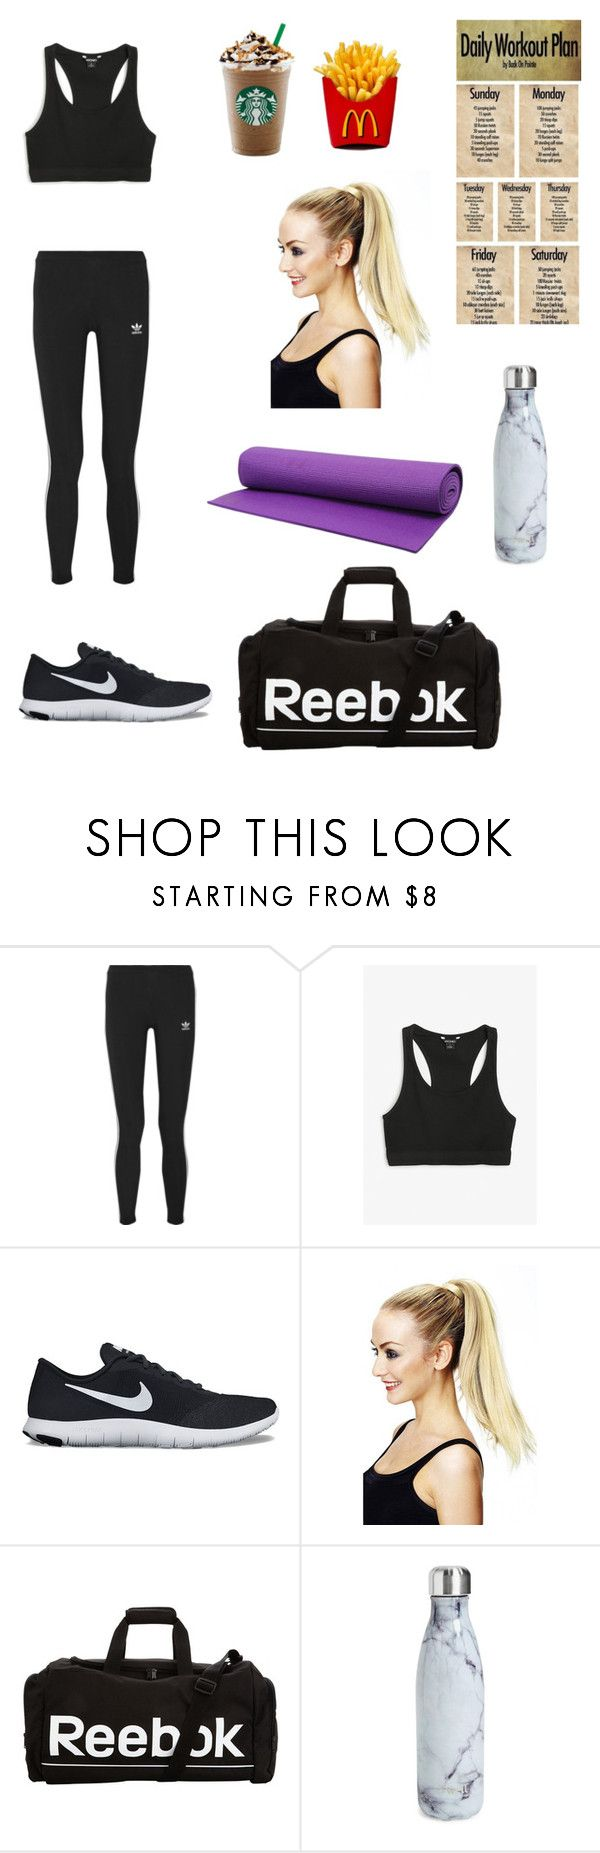 """YOGA🤞🏻"" by kkinast ❤ liked on Polyvore featuring adidas Originals, Monki, NIKE, Reebok and S'well"